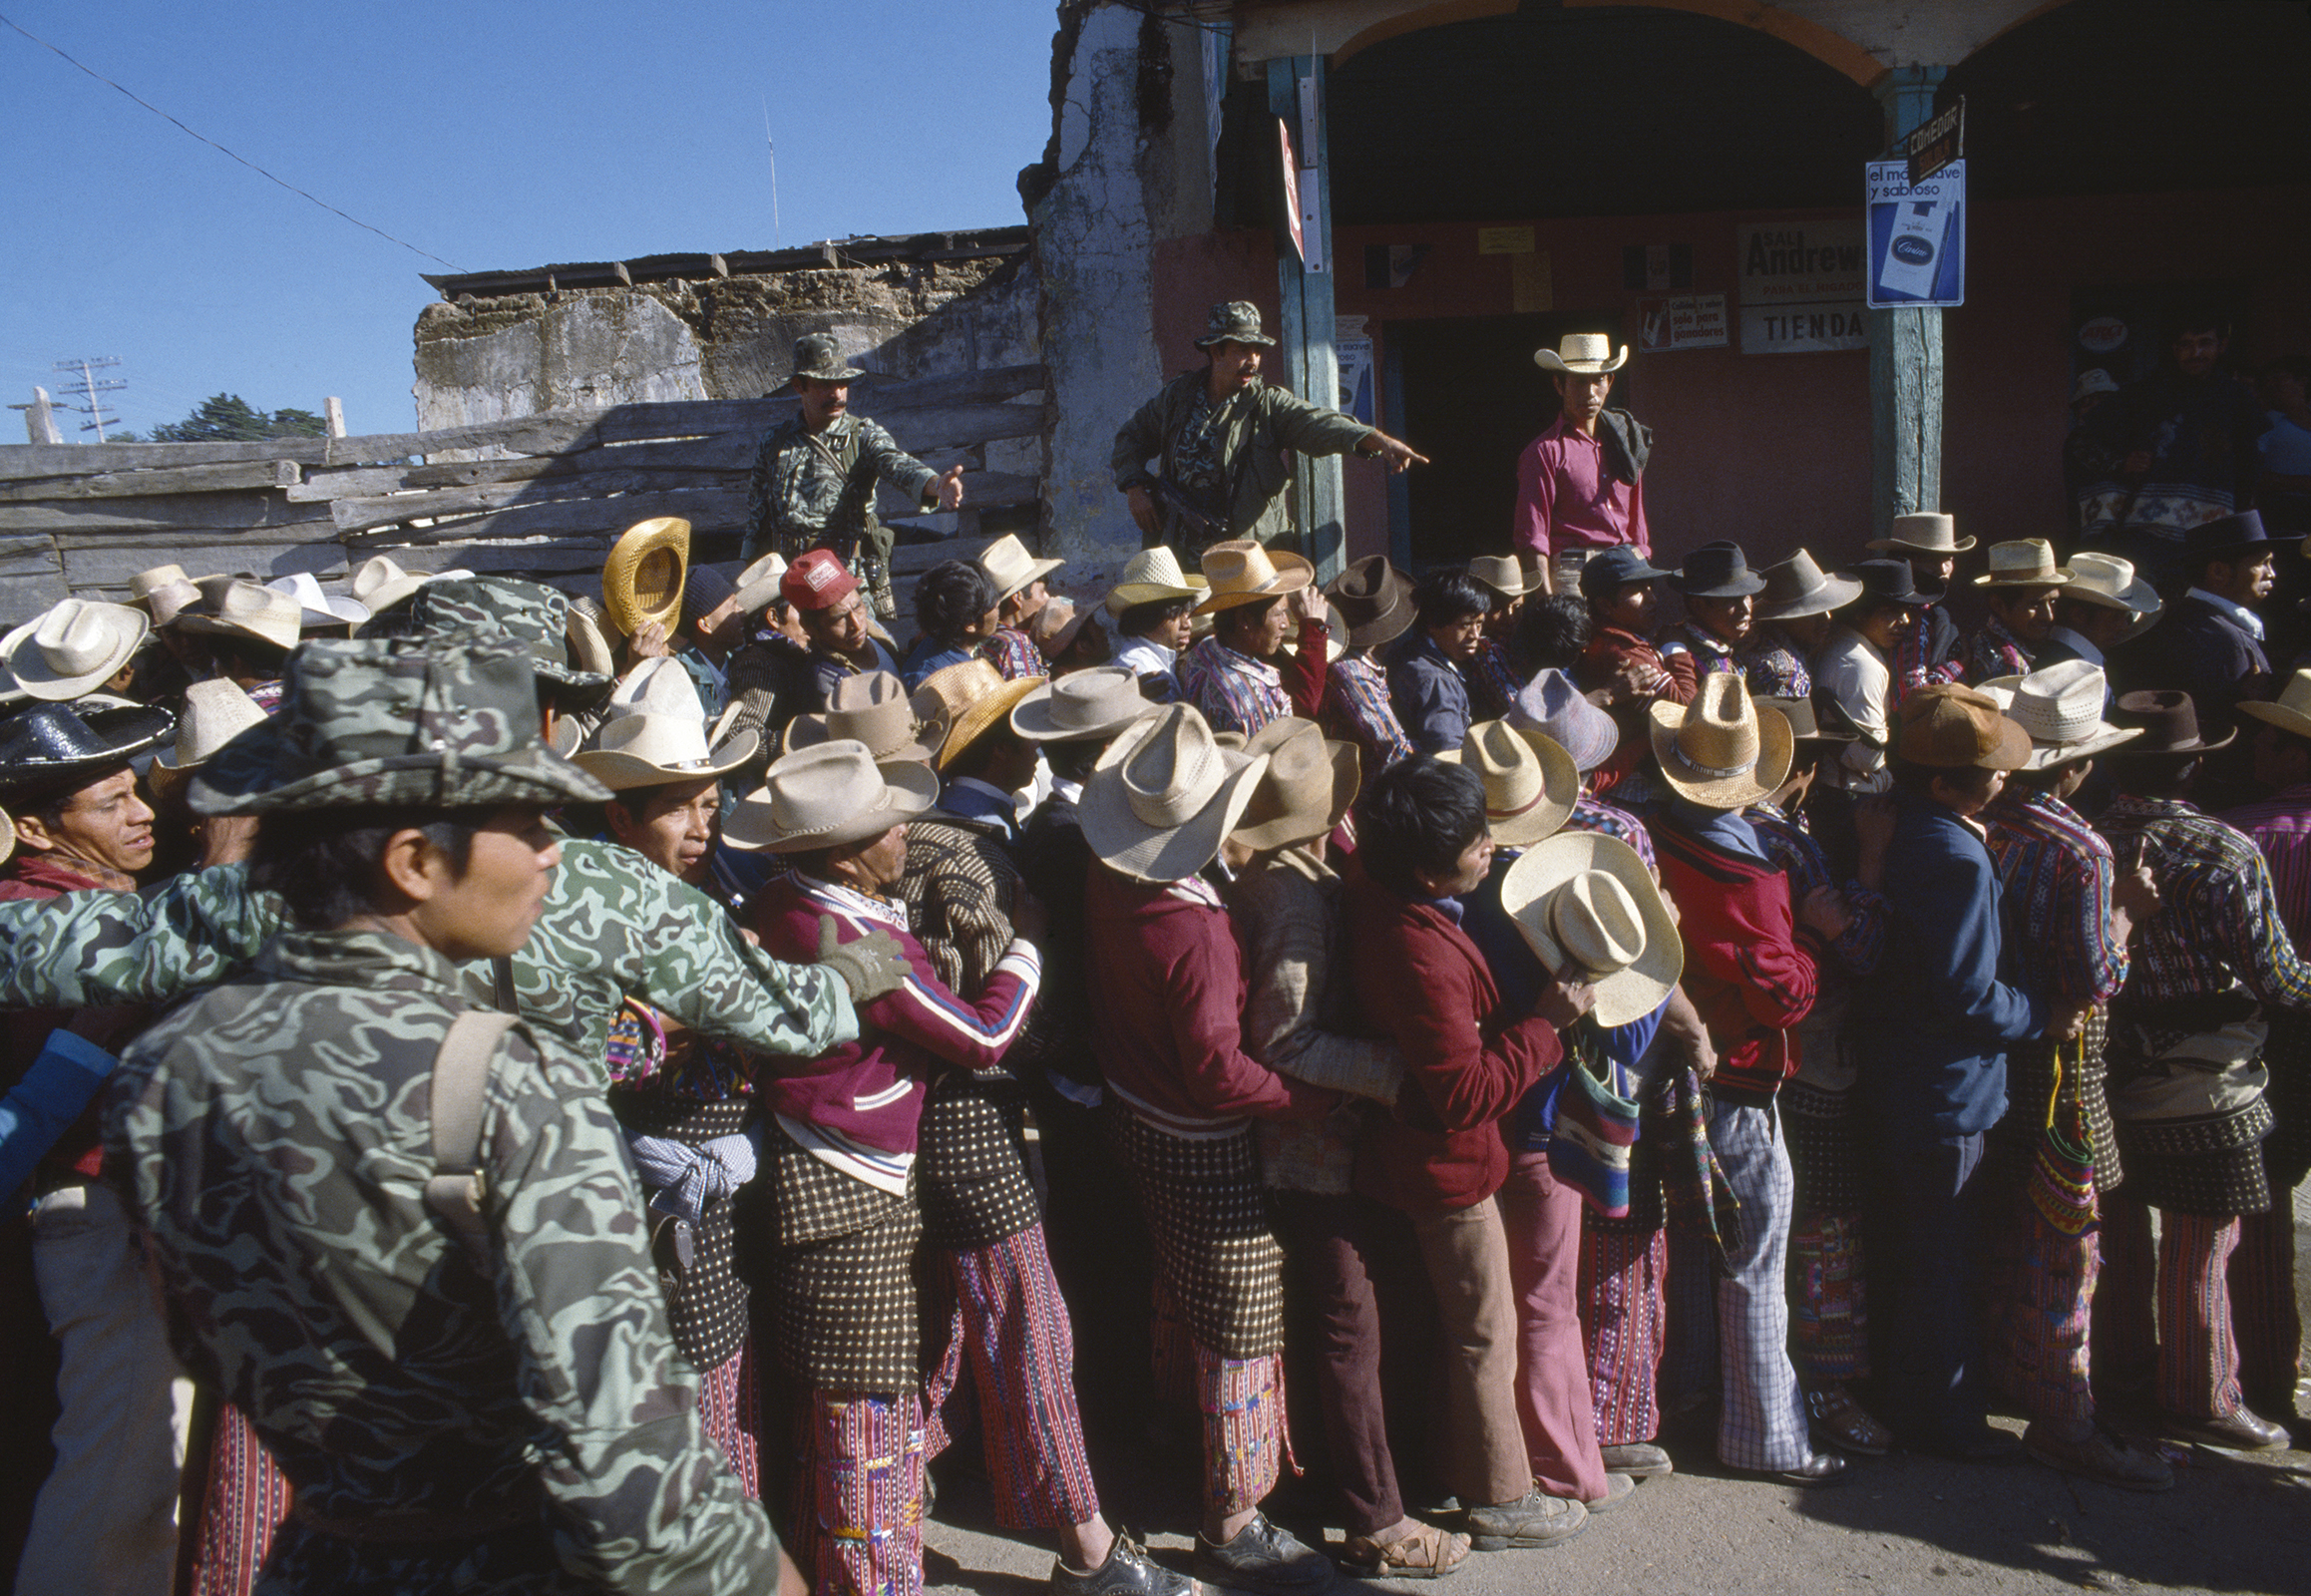 Guatemalan army soldiers oversee men lining up to vote in the presidential election in Sololá, Guatemala on March 7, 1982. General Ángel Aníbal Guevara was declared the winner of the election, which was then widely denounced as fraudulent. A military coup d'état on March 23, 1982 led by General Efraín Ríos Montt prevented him from assuming power.